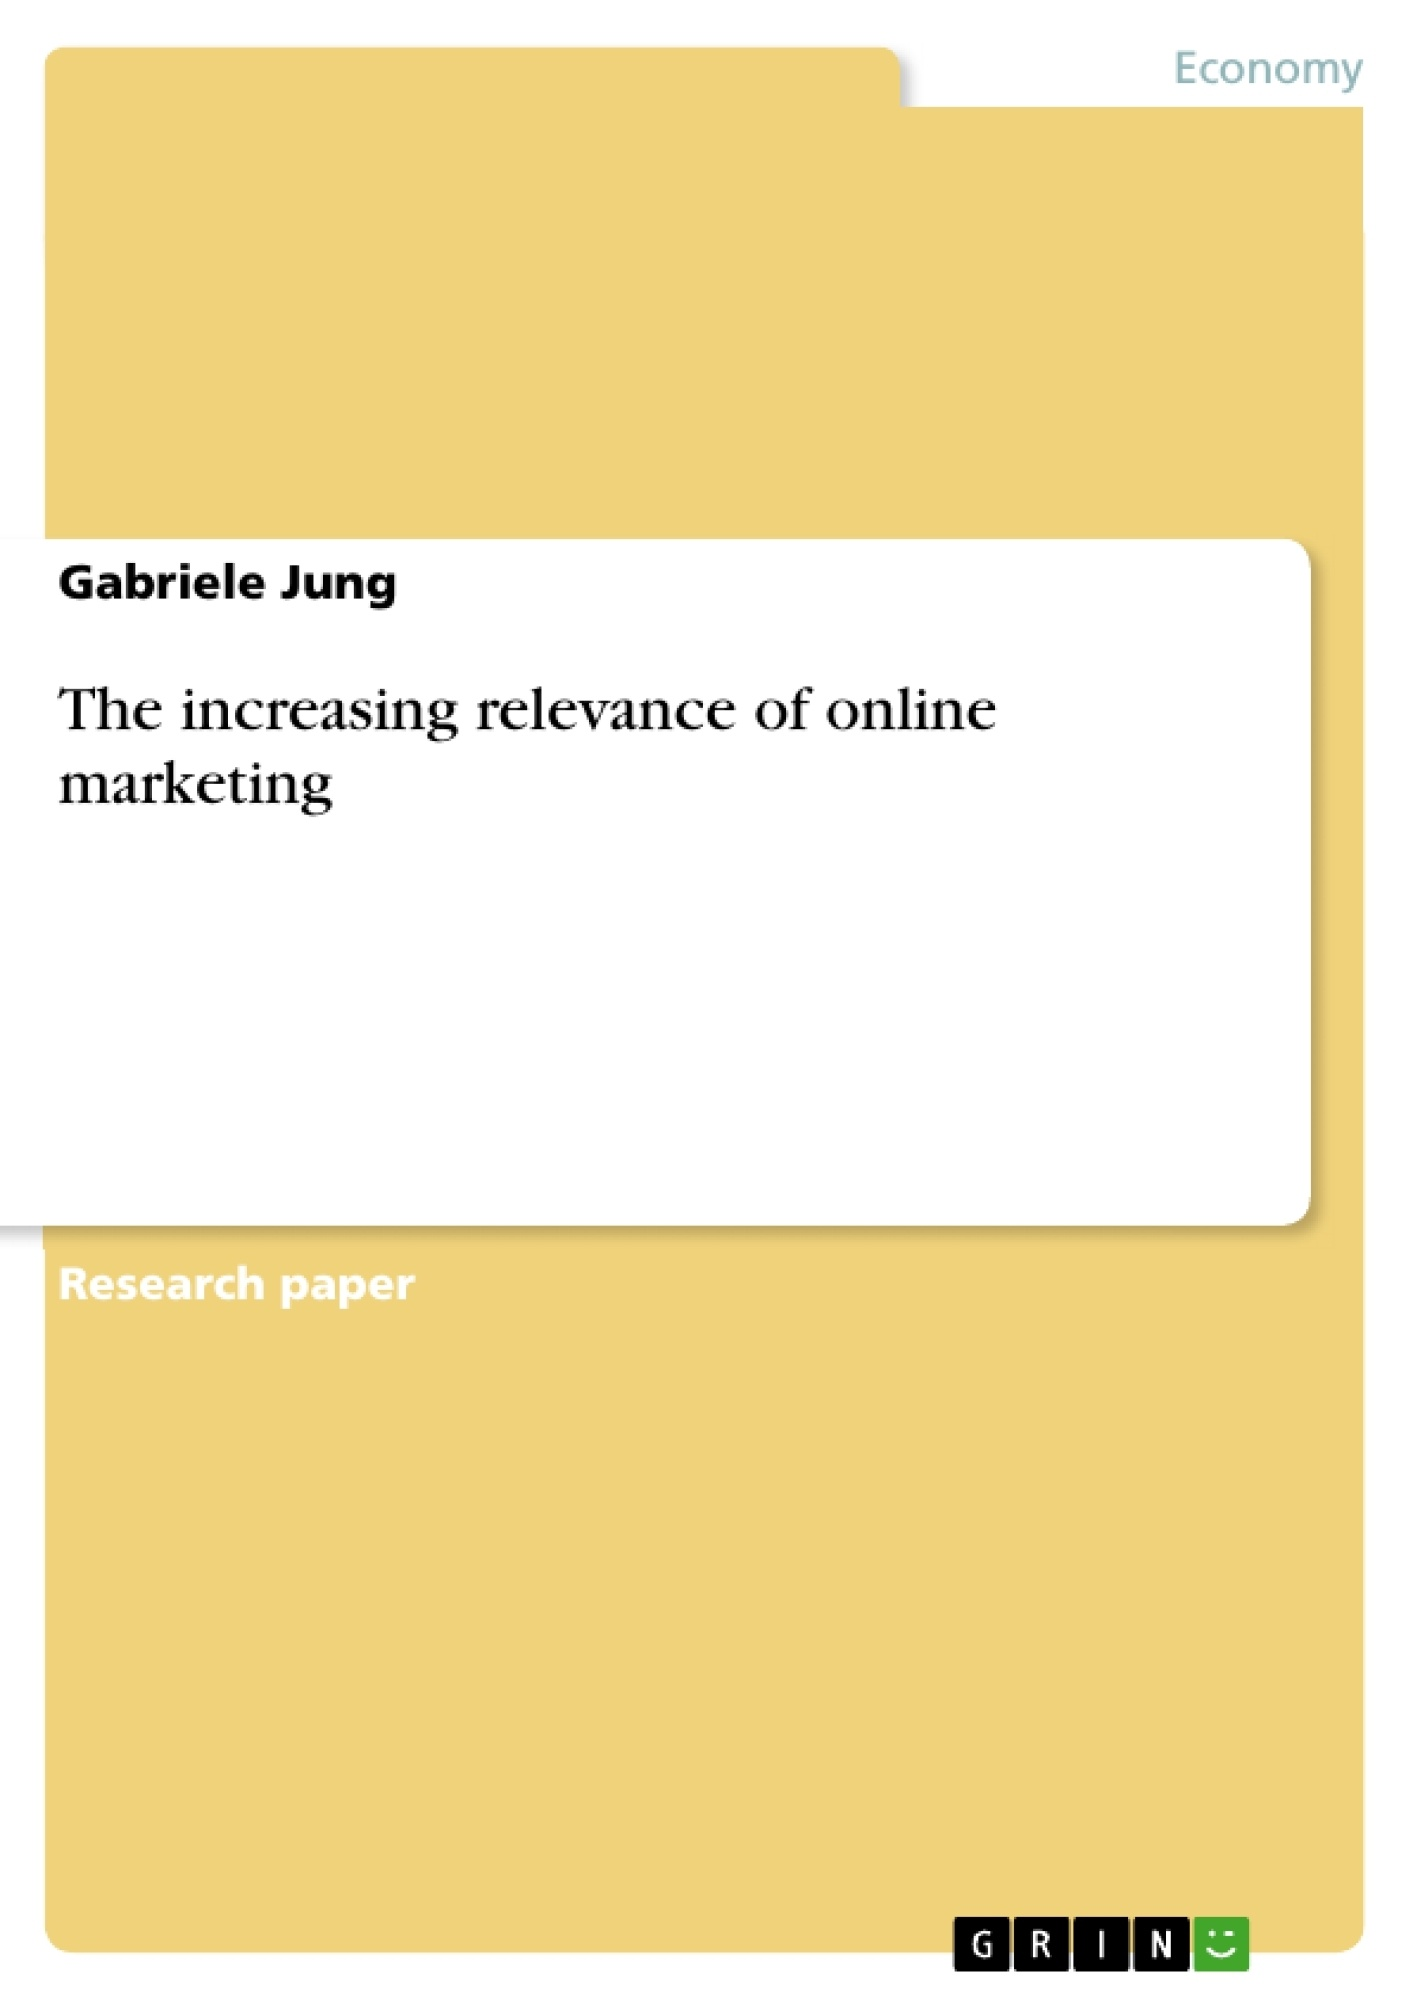 Title: The increasing relevance of online marketing